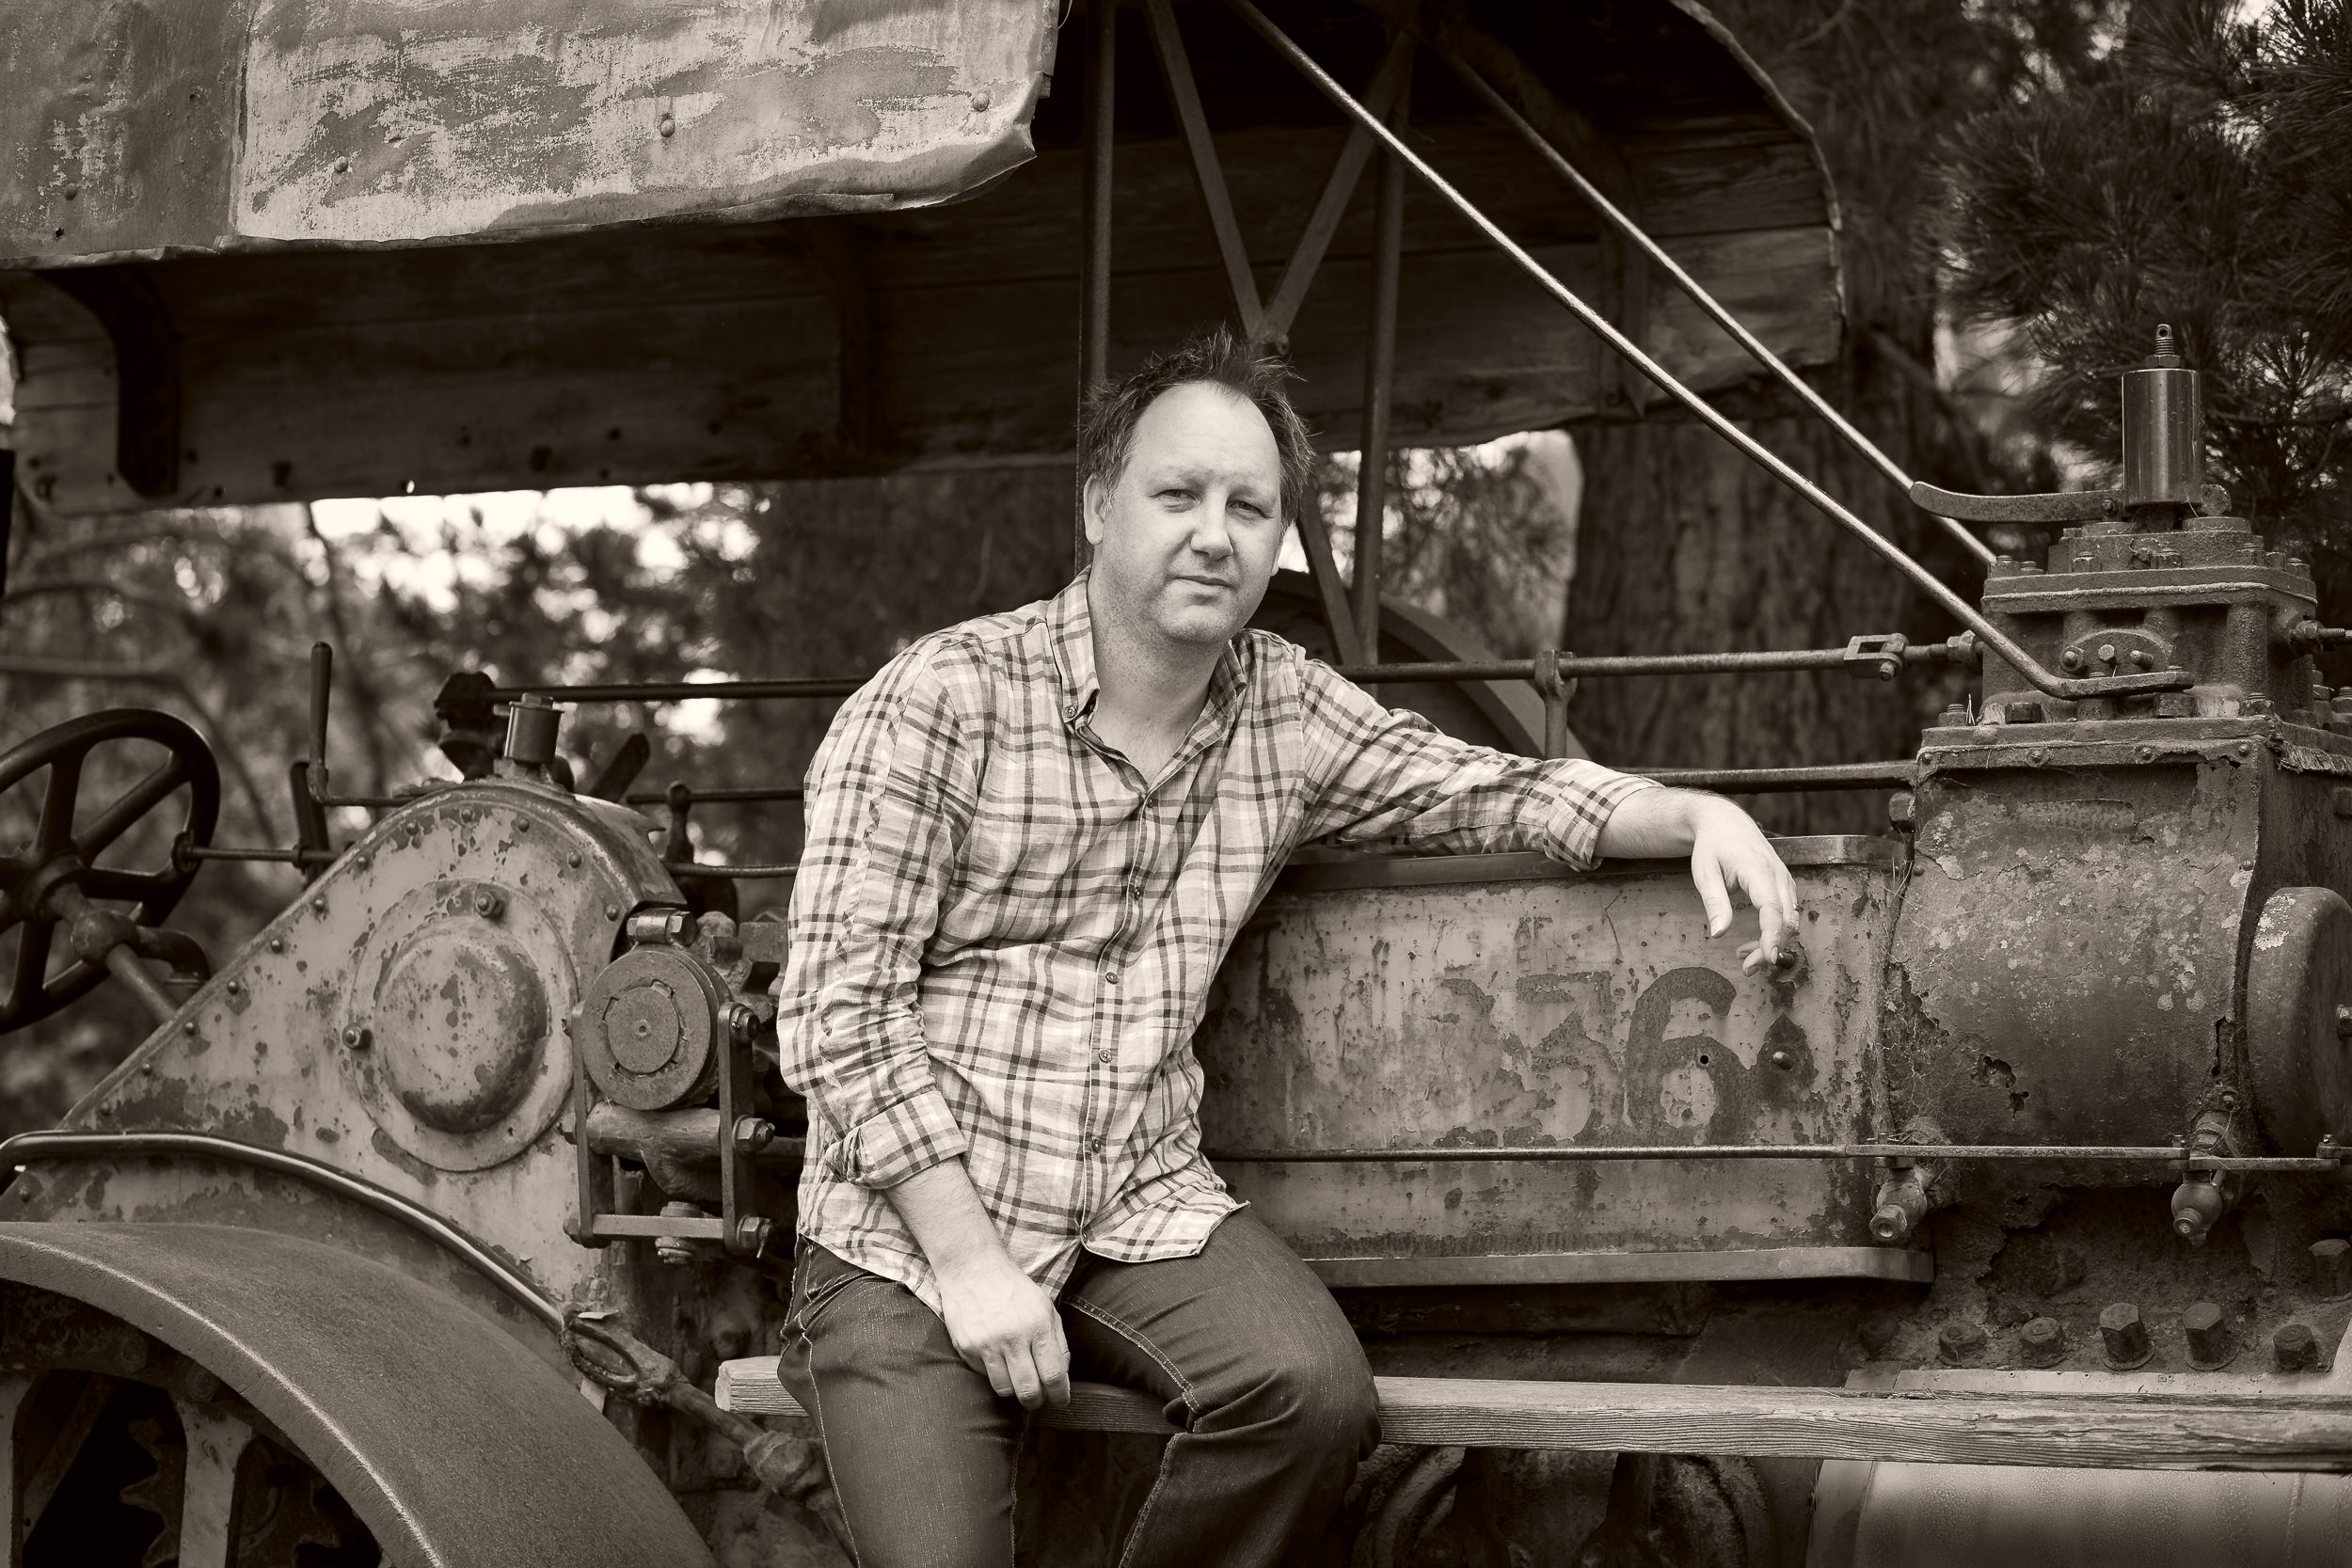 A  sepia like portrait  of Dale, seated on old machinery, on the outskirts of  Melbourne, Australia .